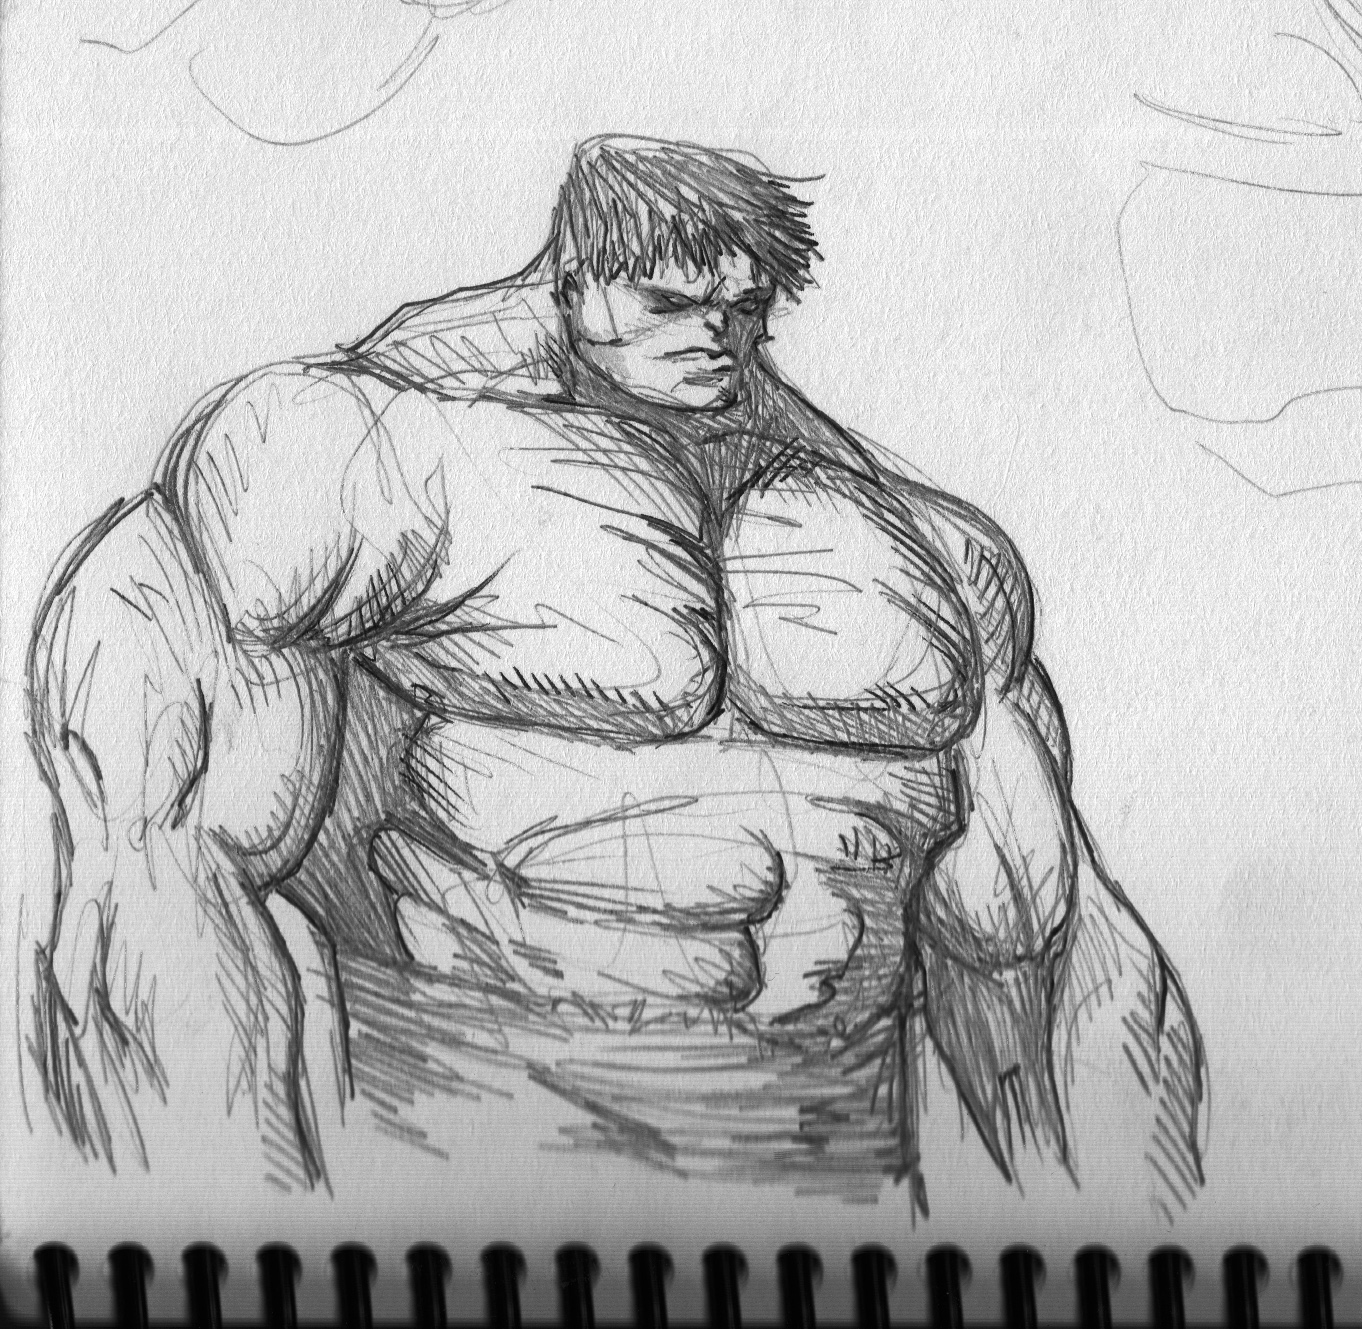 Warm up sketch hulk